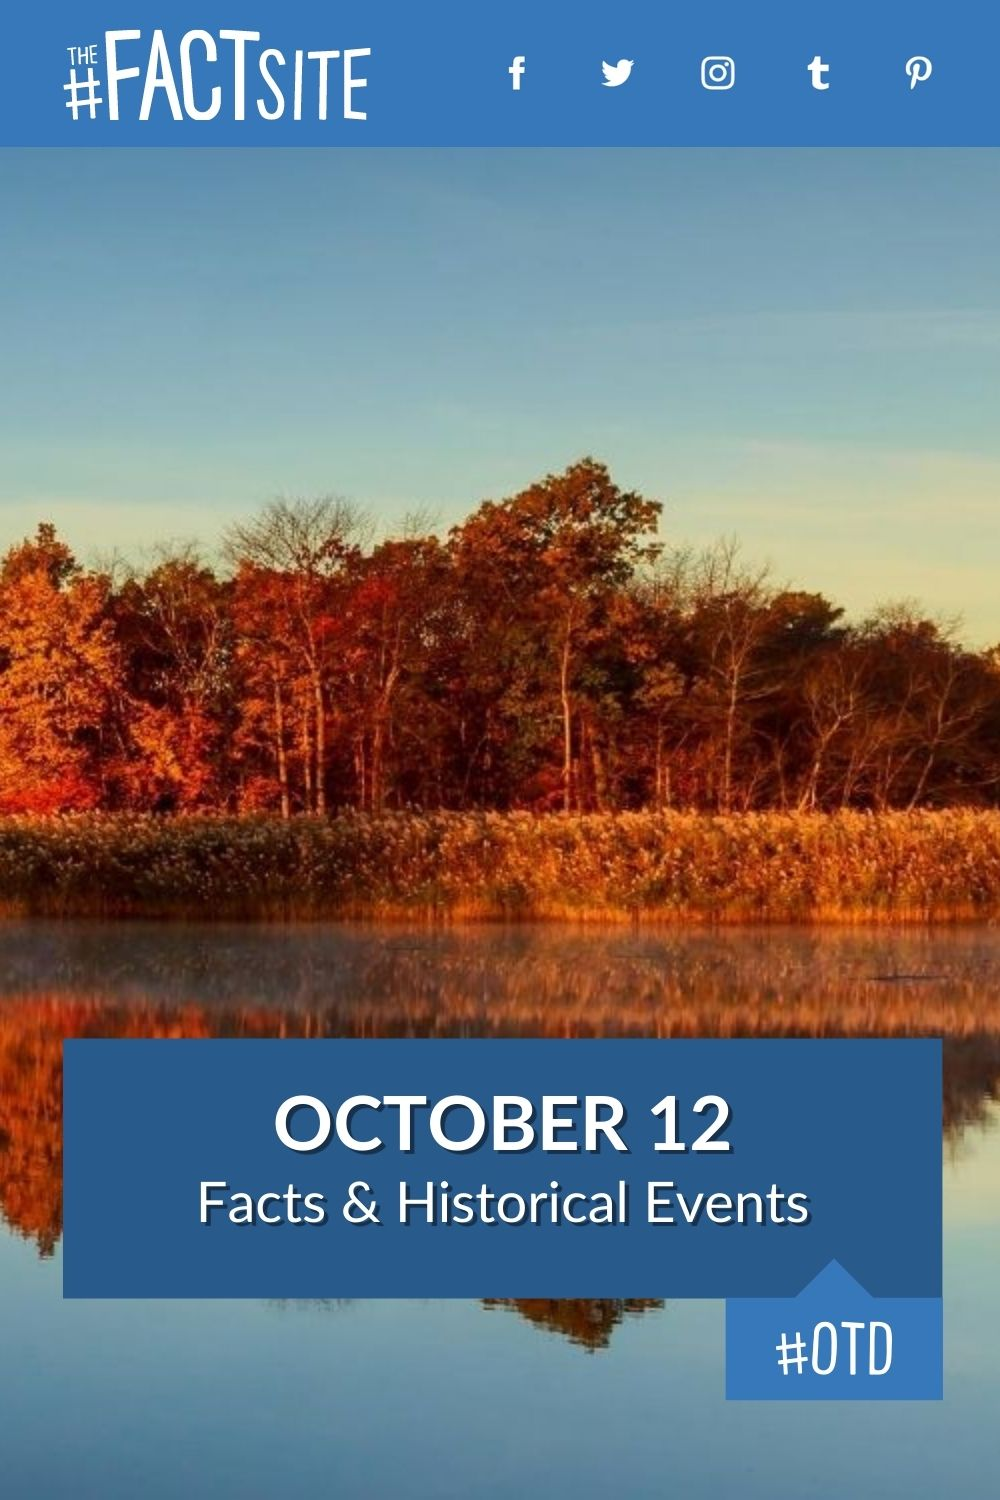 Facts & Historic Events That Happened on October 12